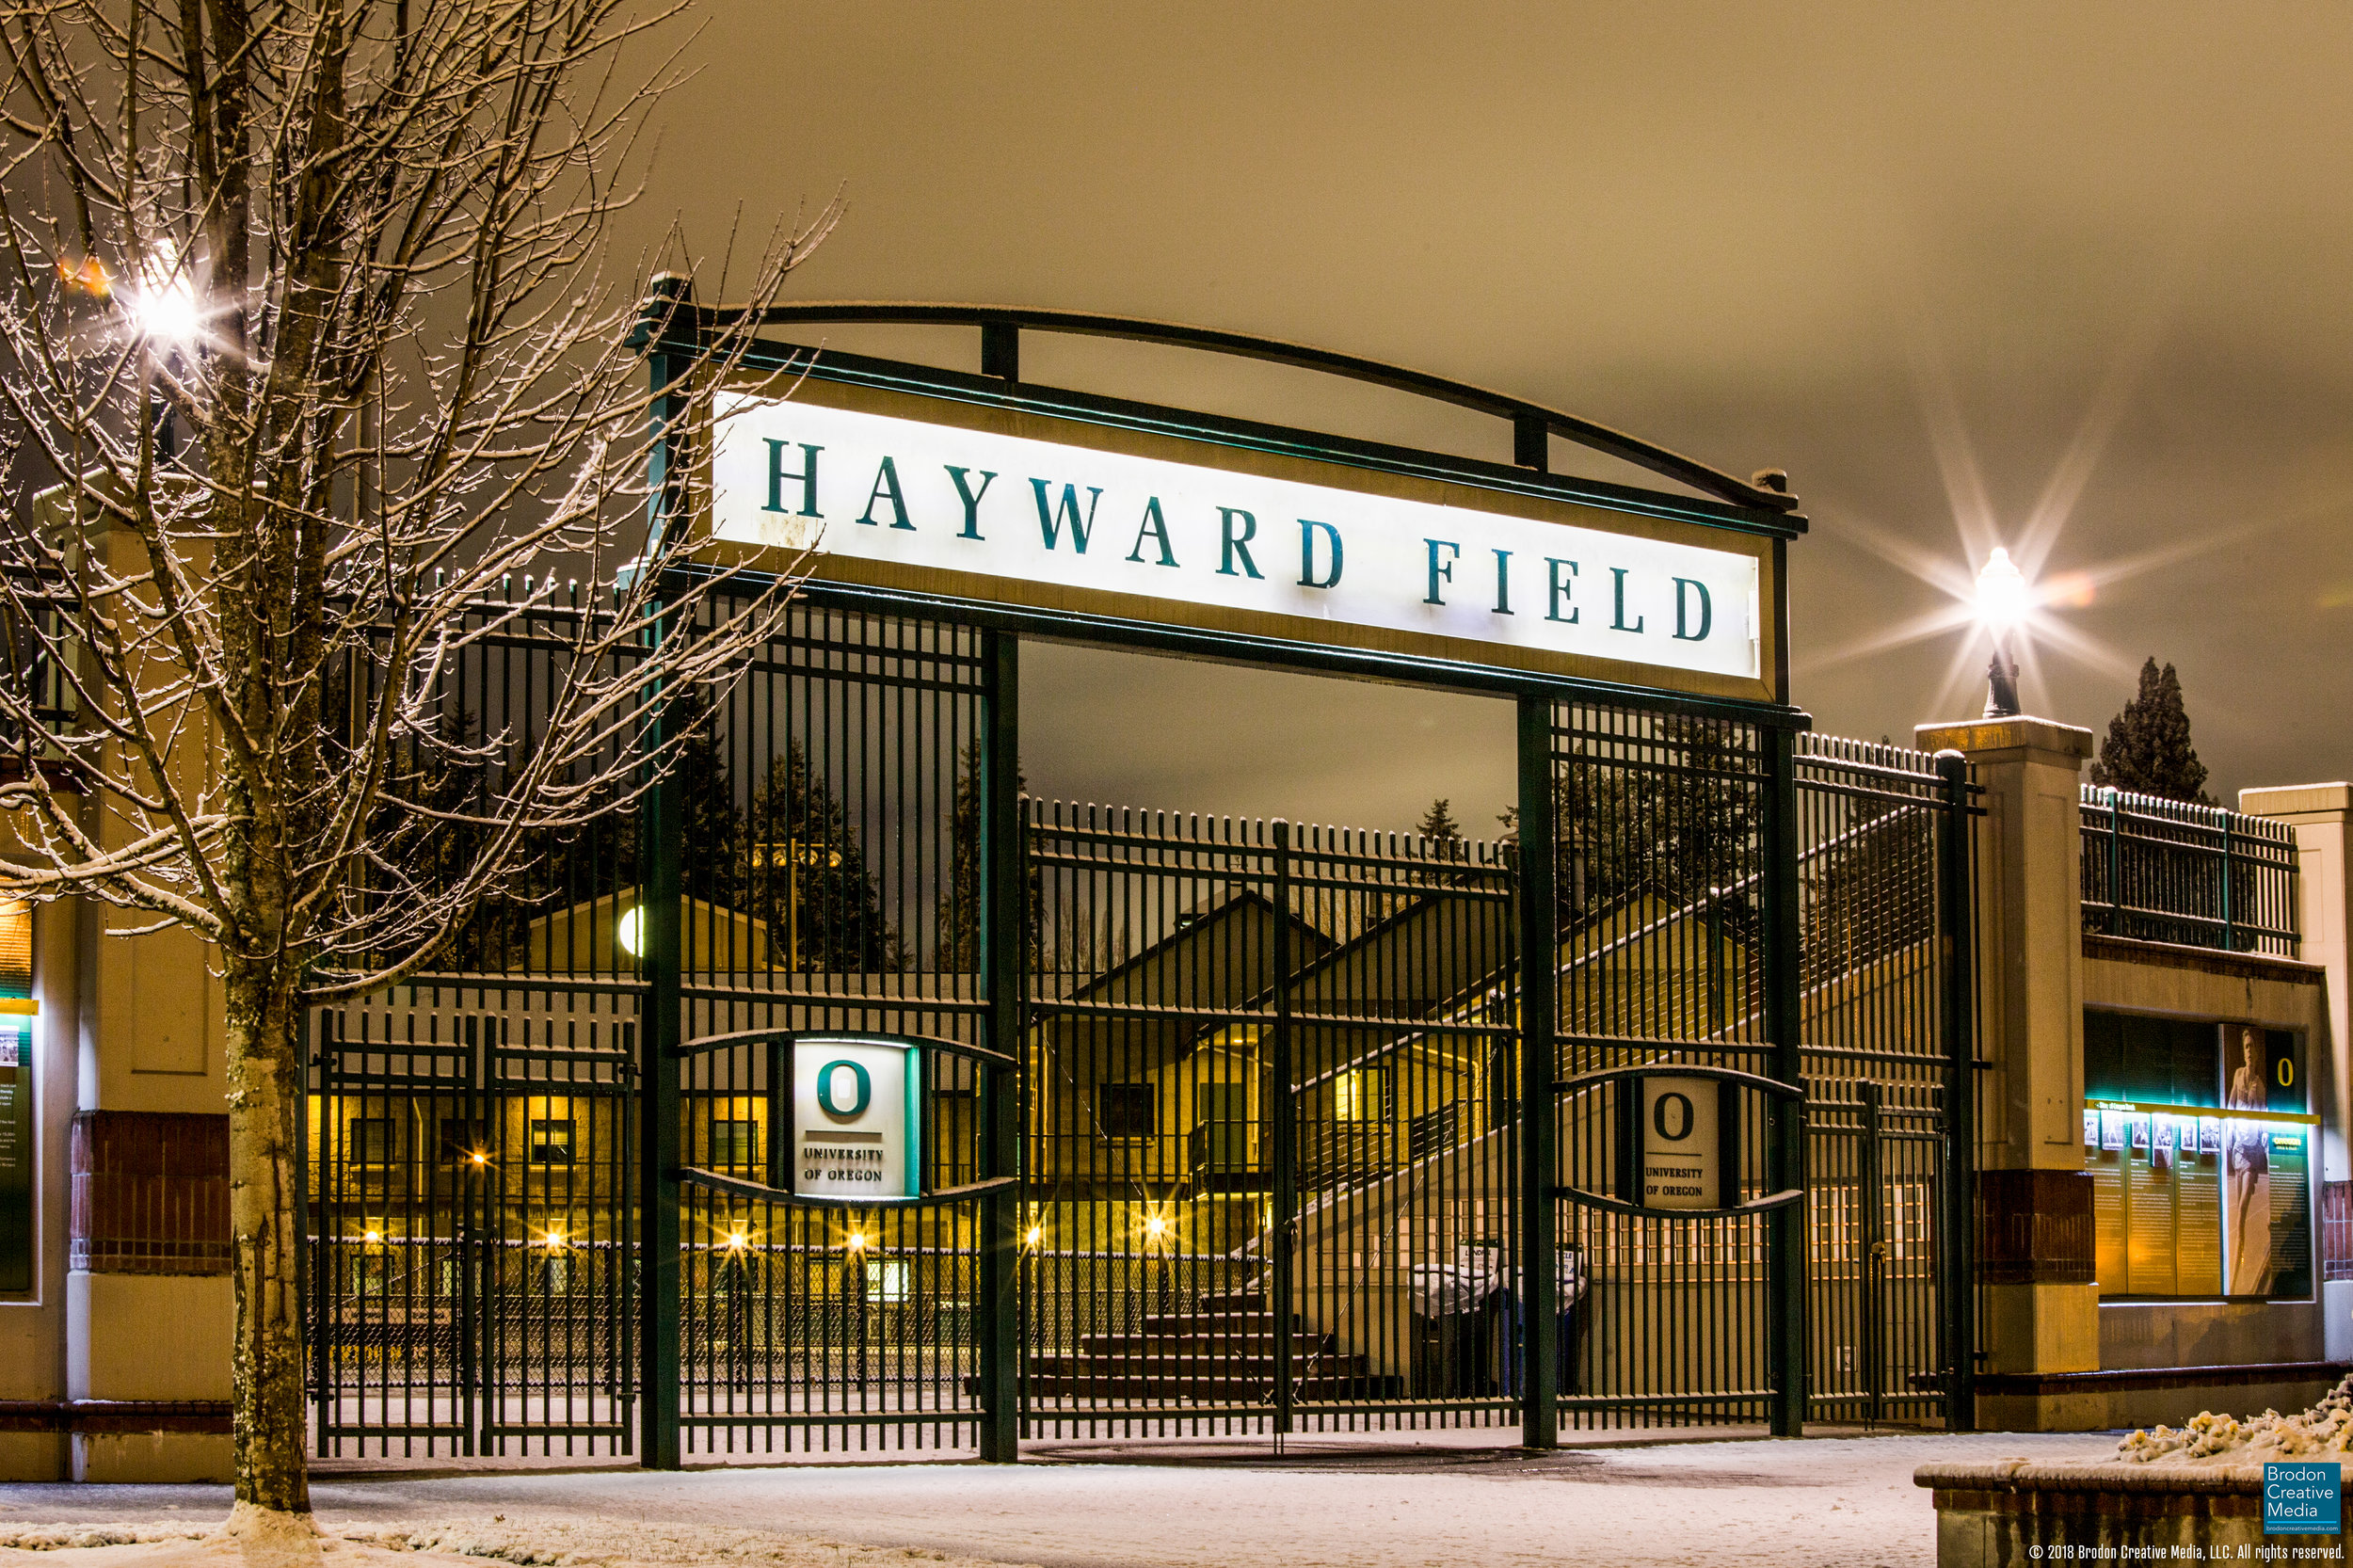 Hayward snowy, bright, sharp, BCM Logo - IMG_0420.jpg